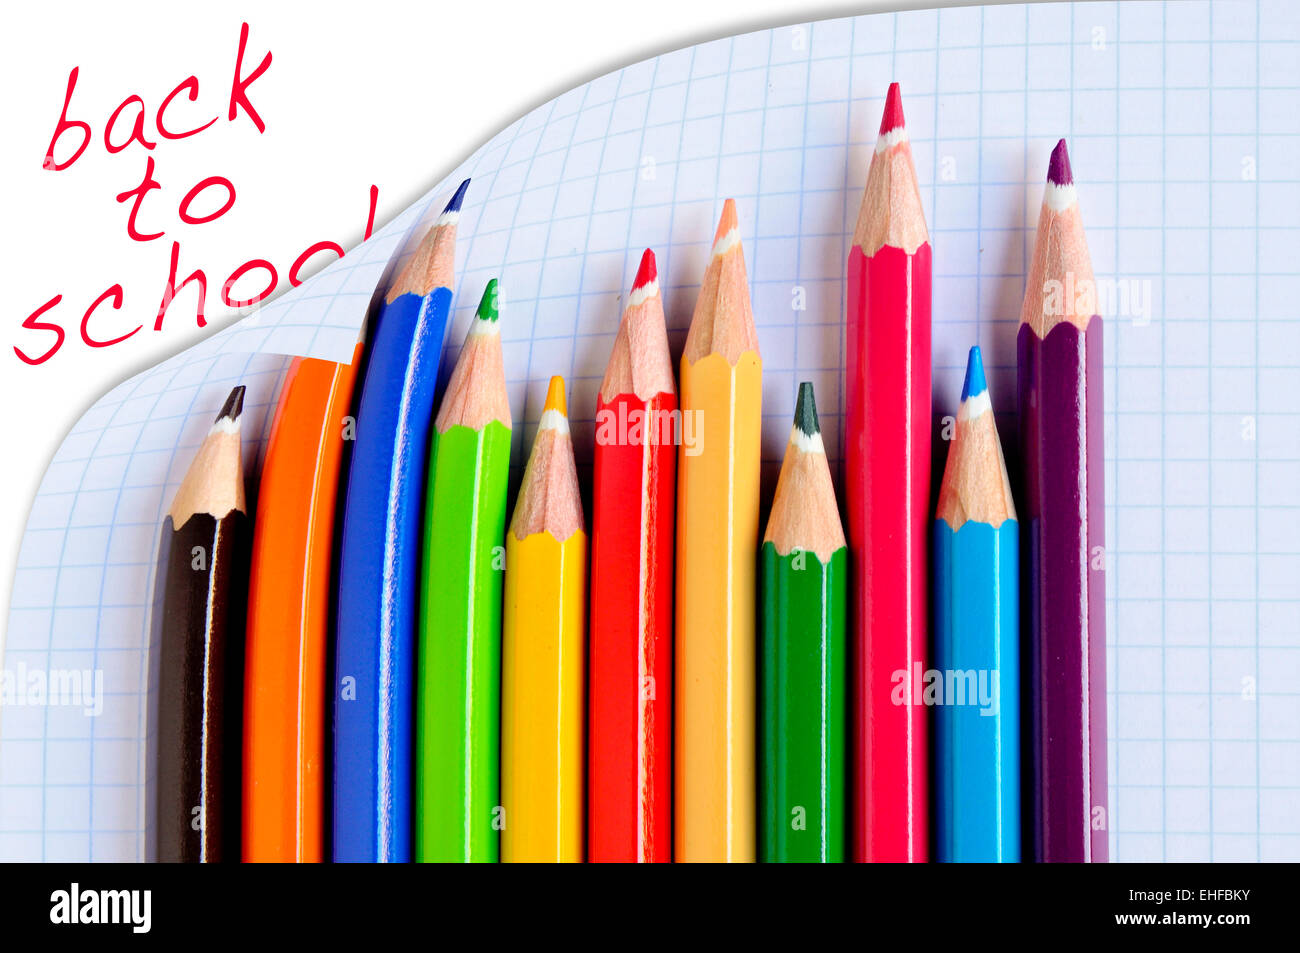 sentence back to school and some pencil crayons of different colors on a checkered paper sheet - Stock Image